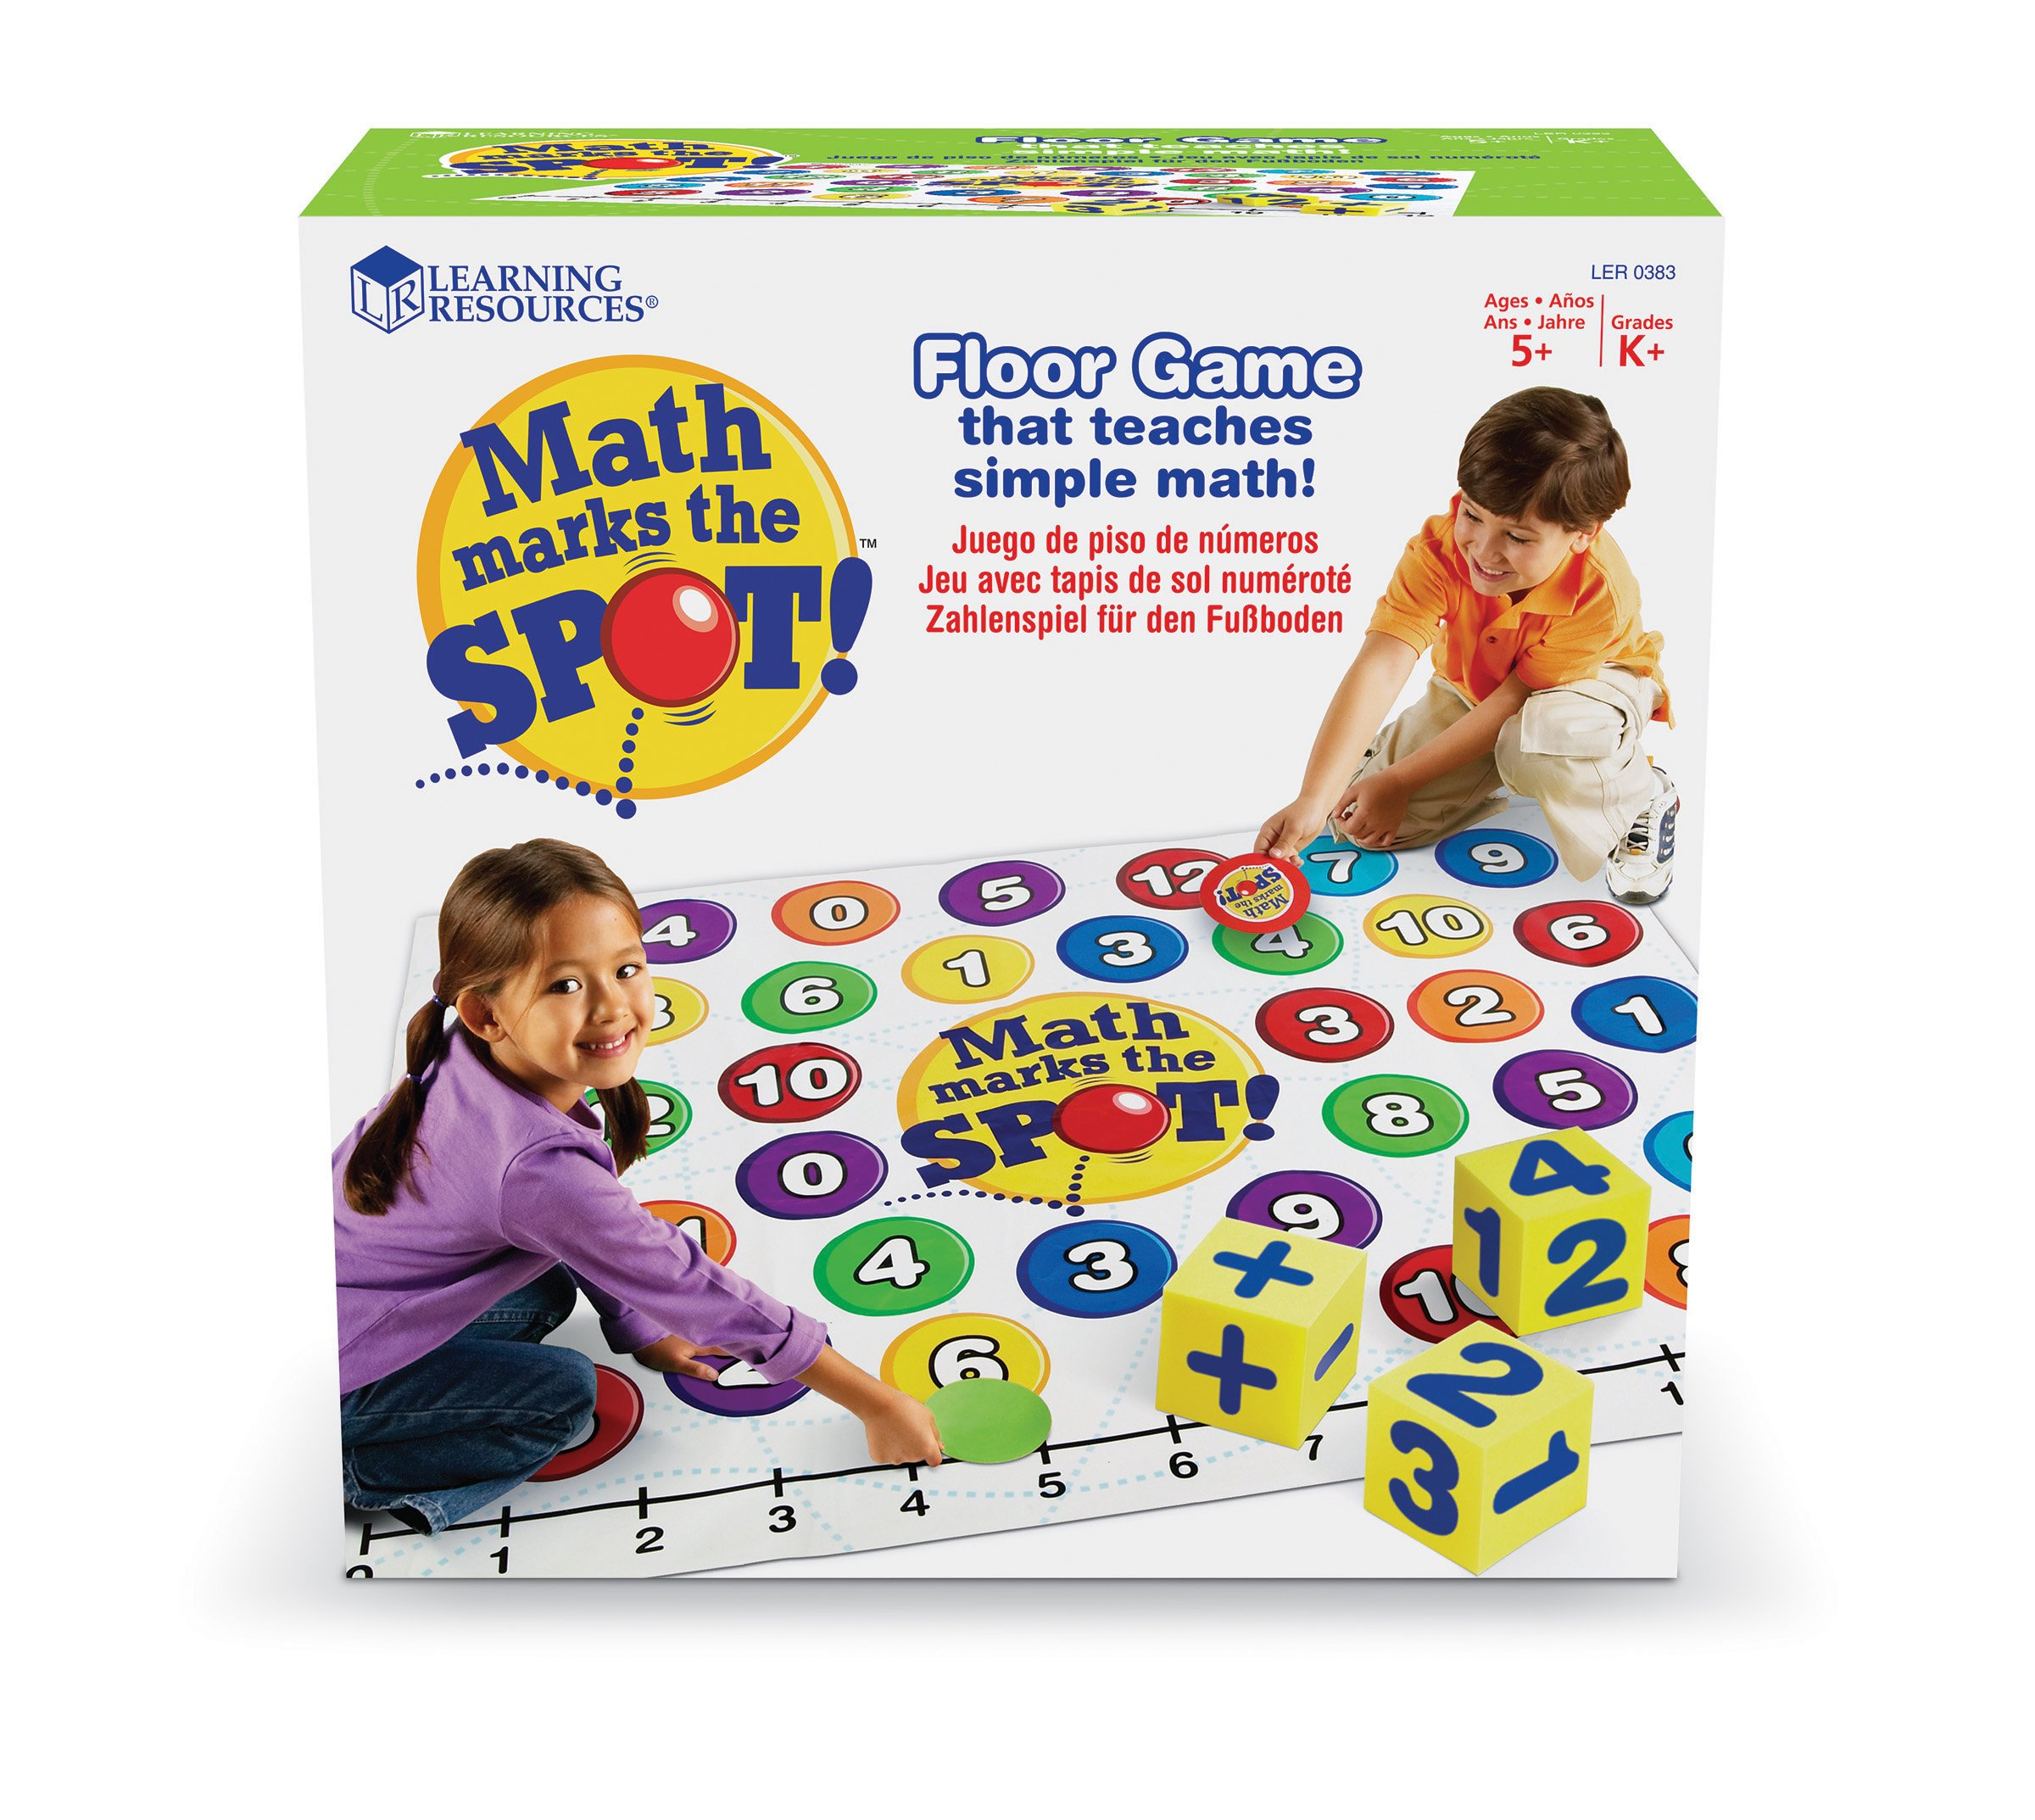 Learning Resources Math Marks The Spot Floor Game, Number Recognition, Addition & Subtraction, Ages 5+ by Learning Resources